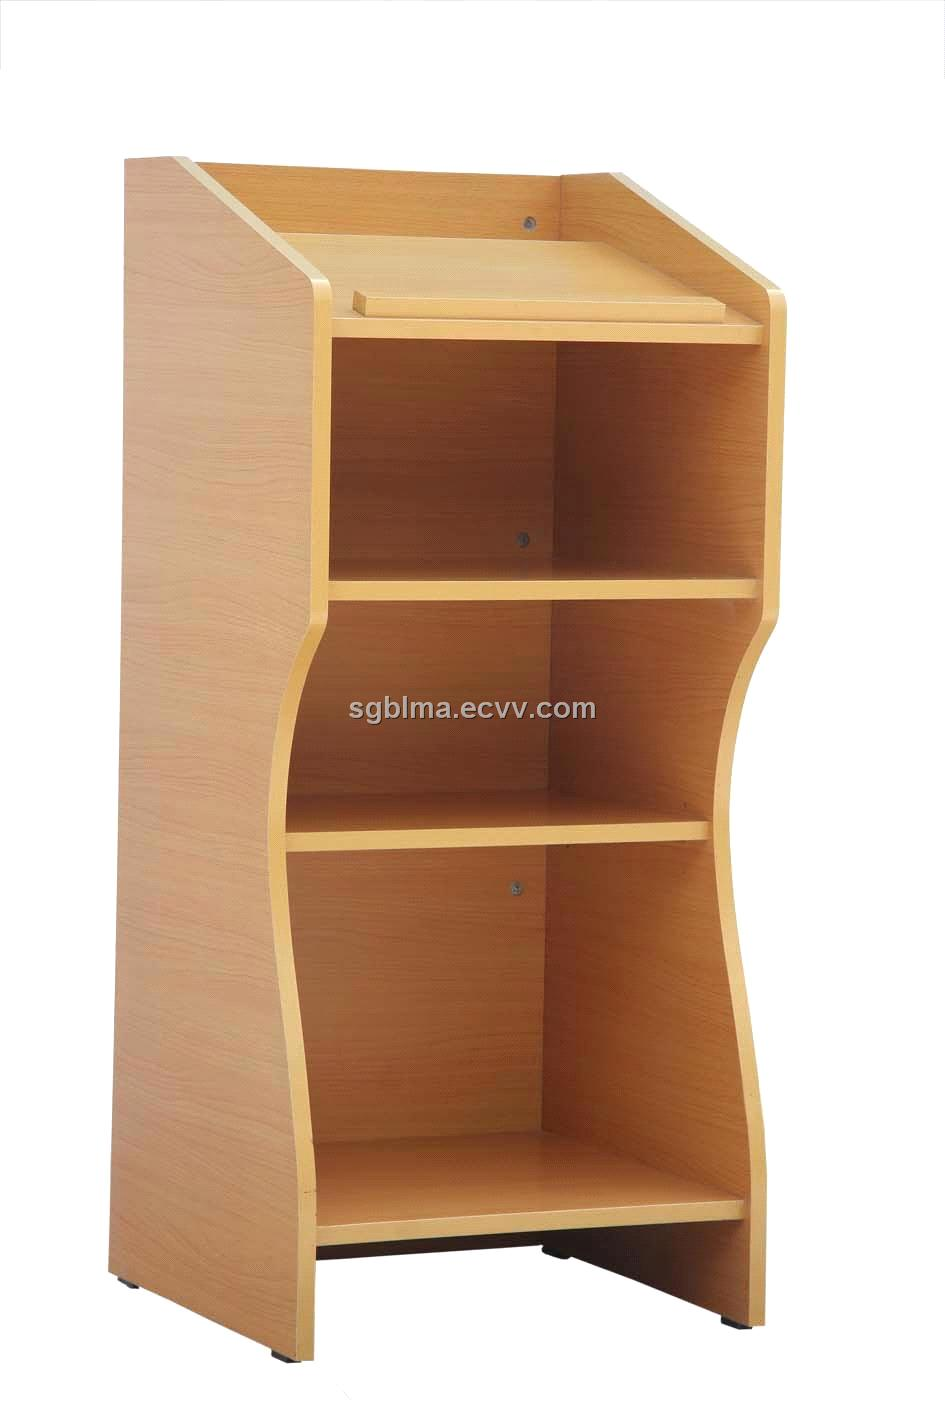 Lecture Table purchasing, souring agent | ECVV.com purchasing service platform